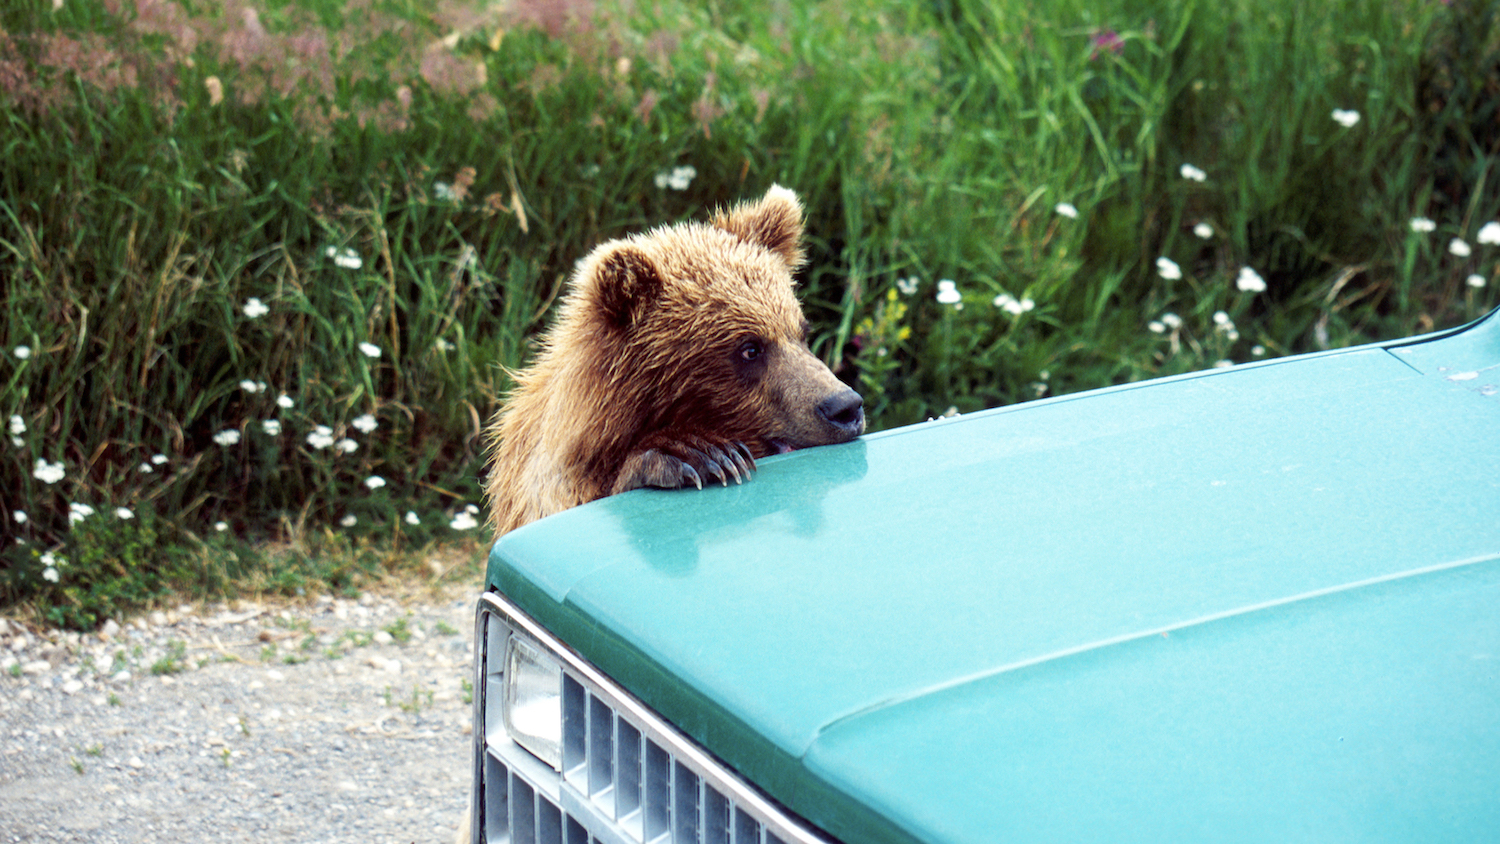 Hungry Bear Tries to Break into Doughnut Delivery Car